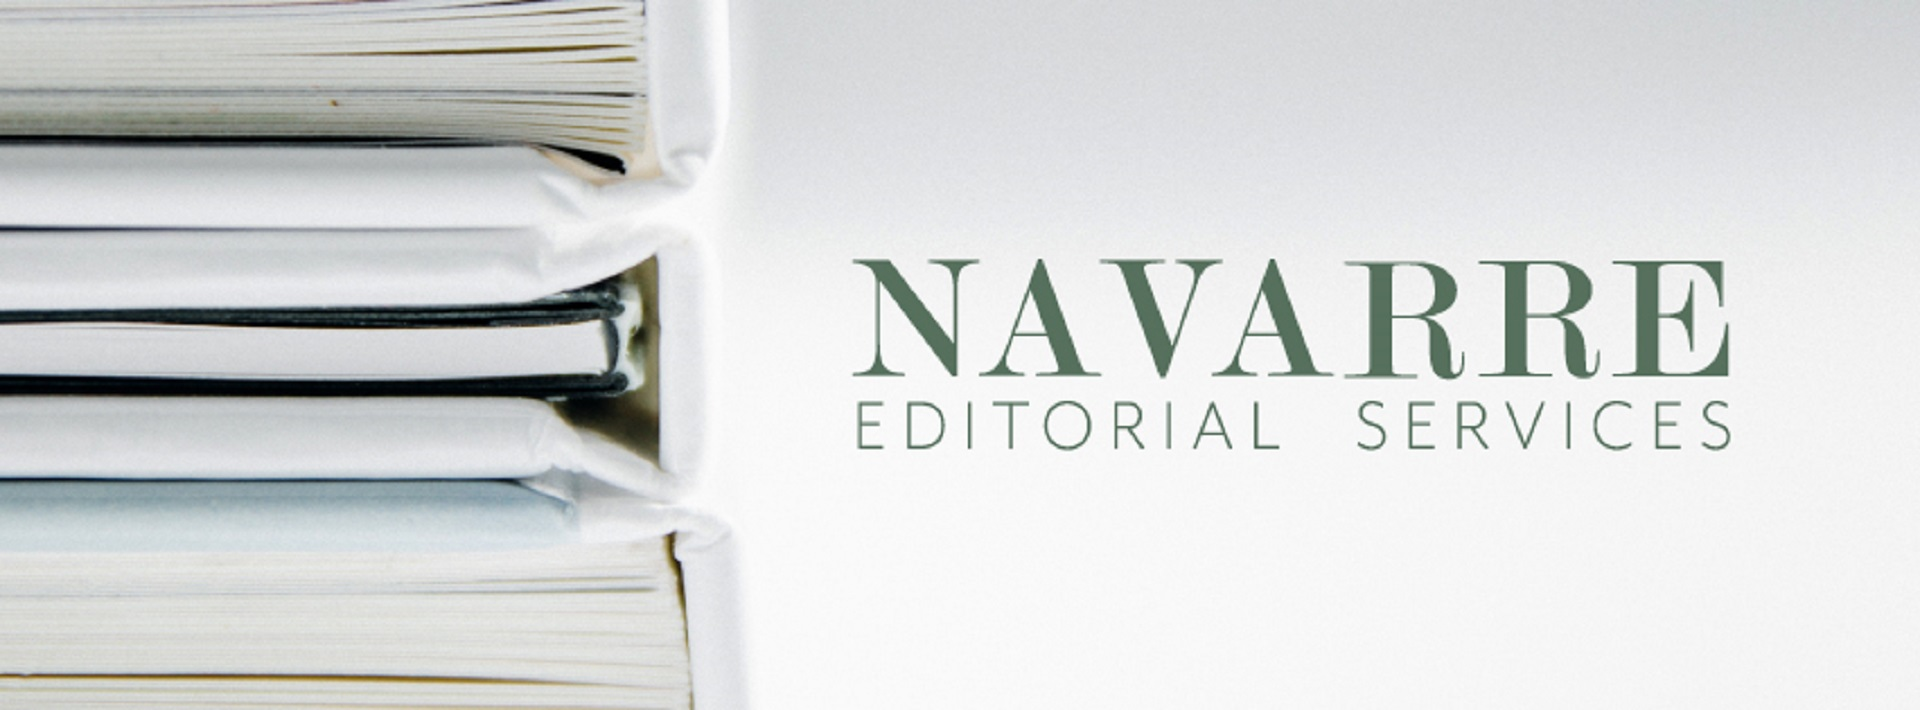 Navarre Editorial Services